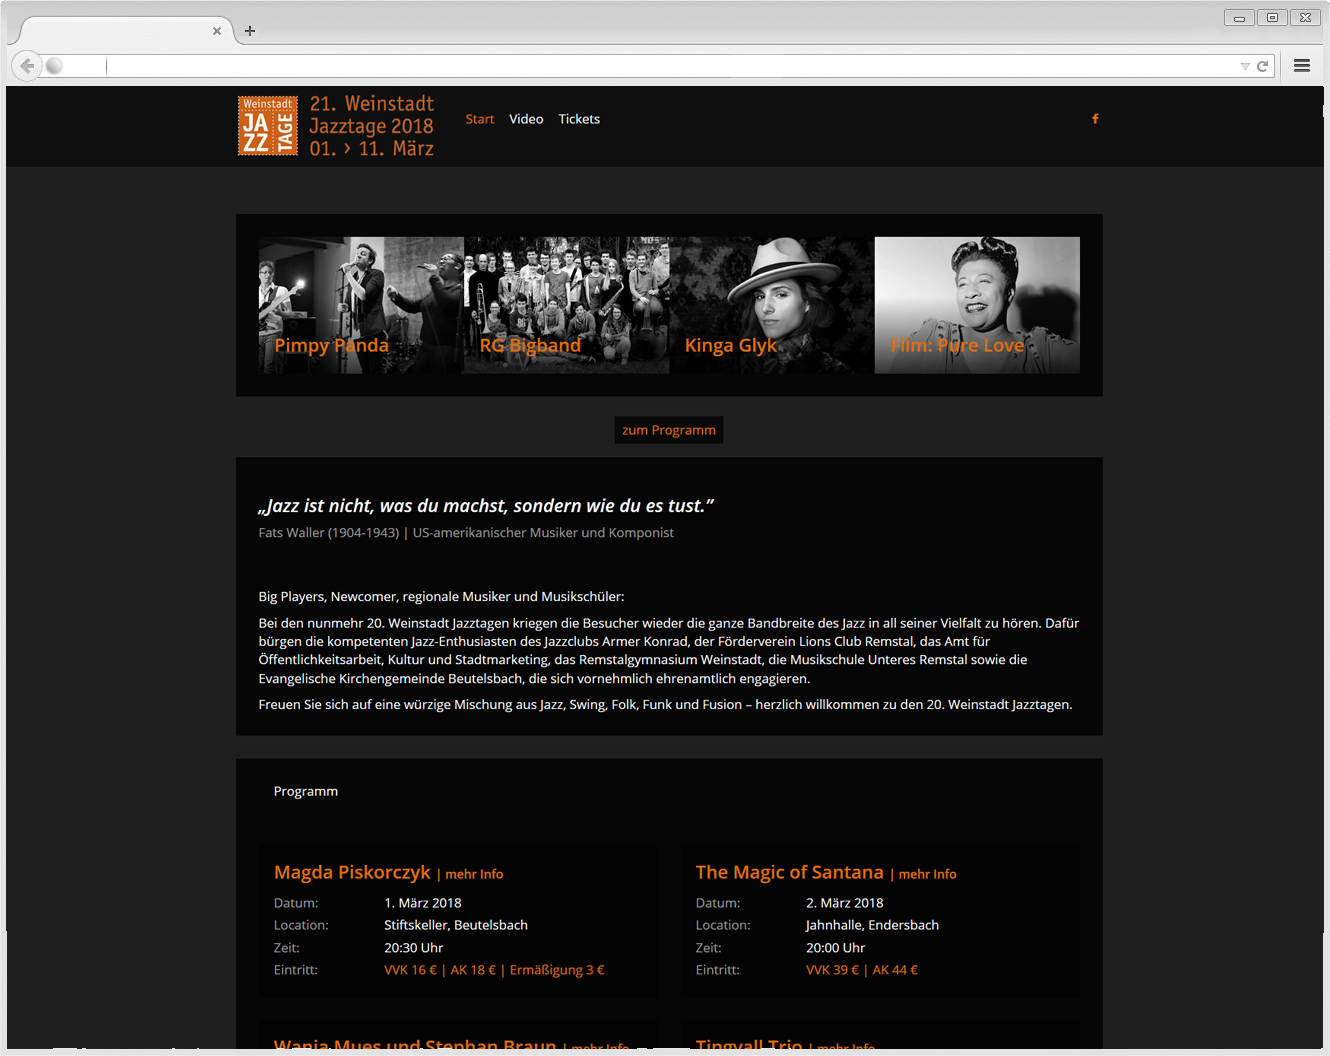 Website Weinstadt Jazztage